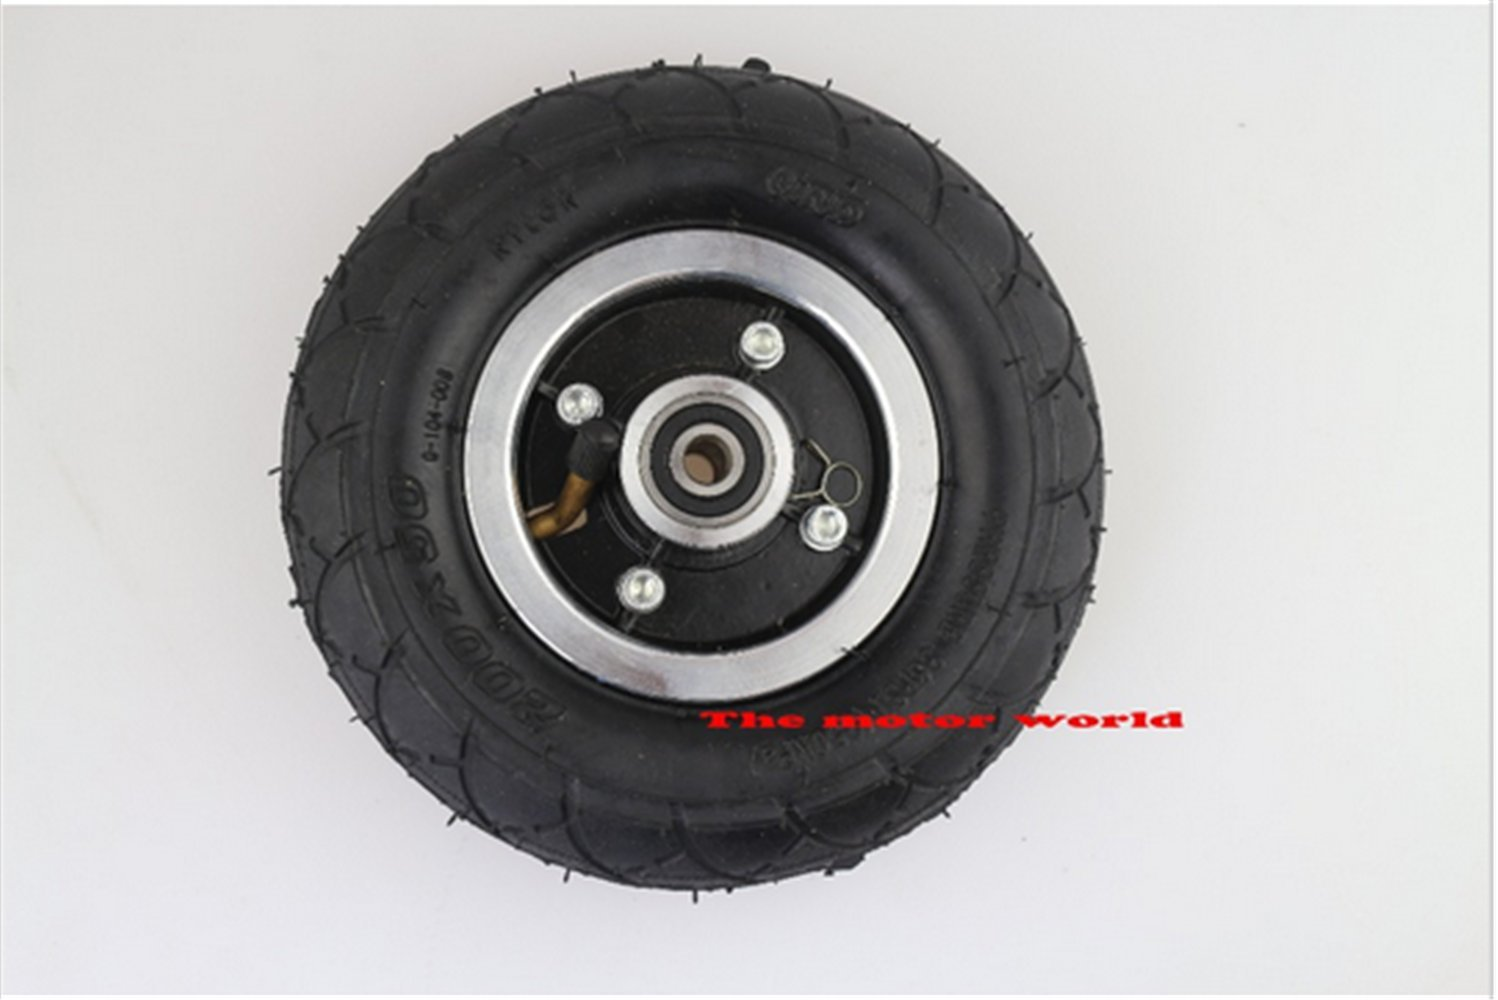 Electric Scooter Tyre With Wheel Hub 8'' Scooter 200x50 Tyre Inflation Electric Vehicle Aluminium Alloy Wheel Pneumatic Tire